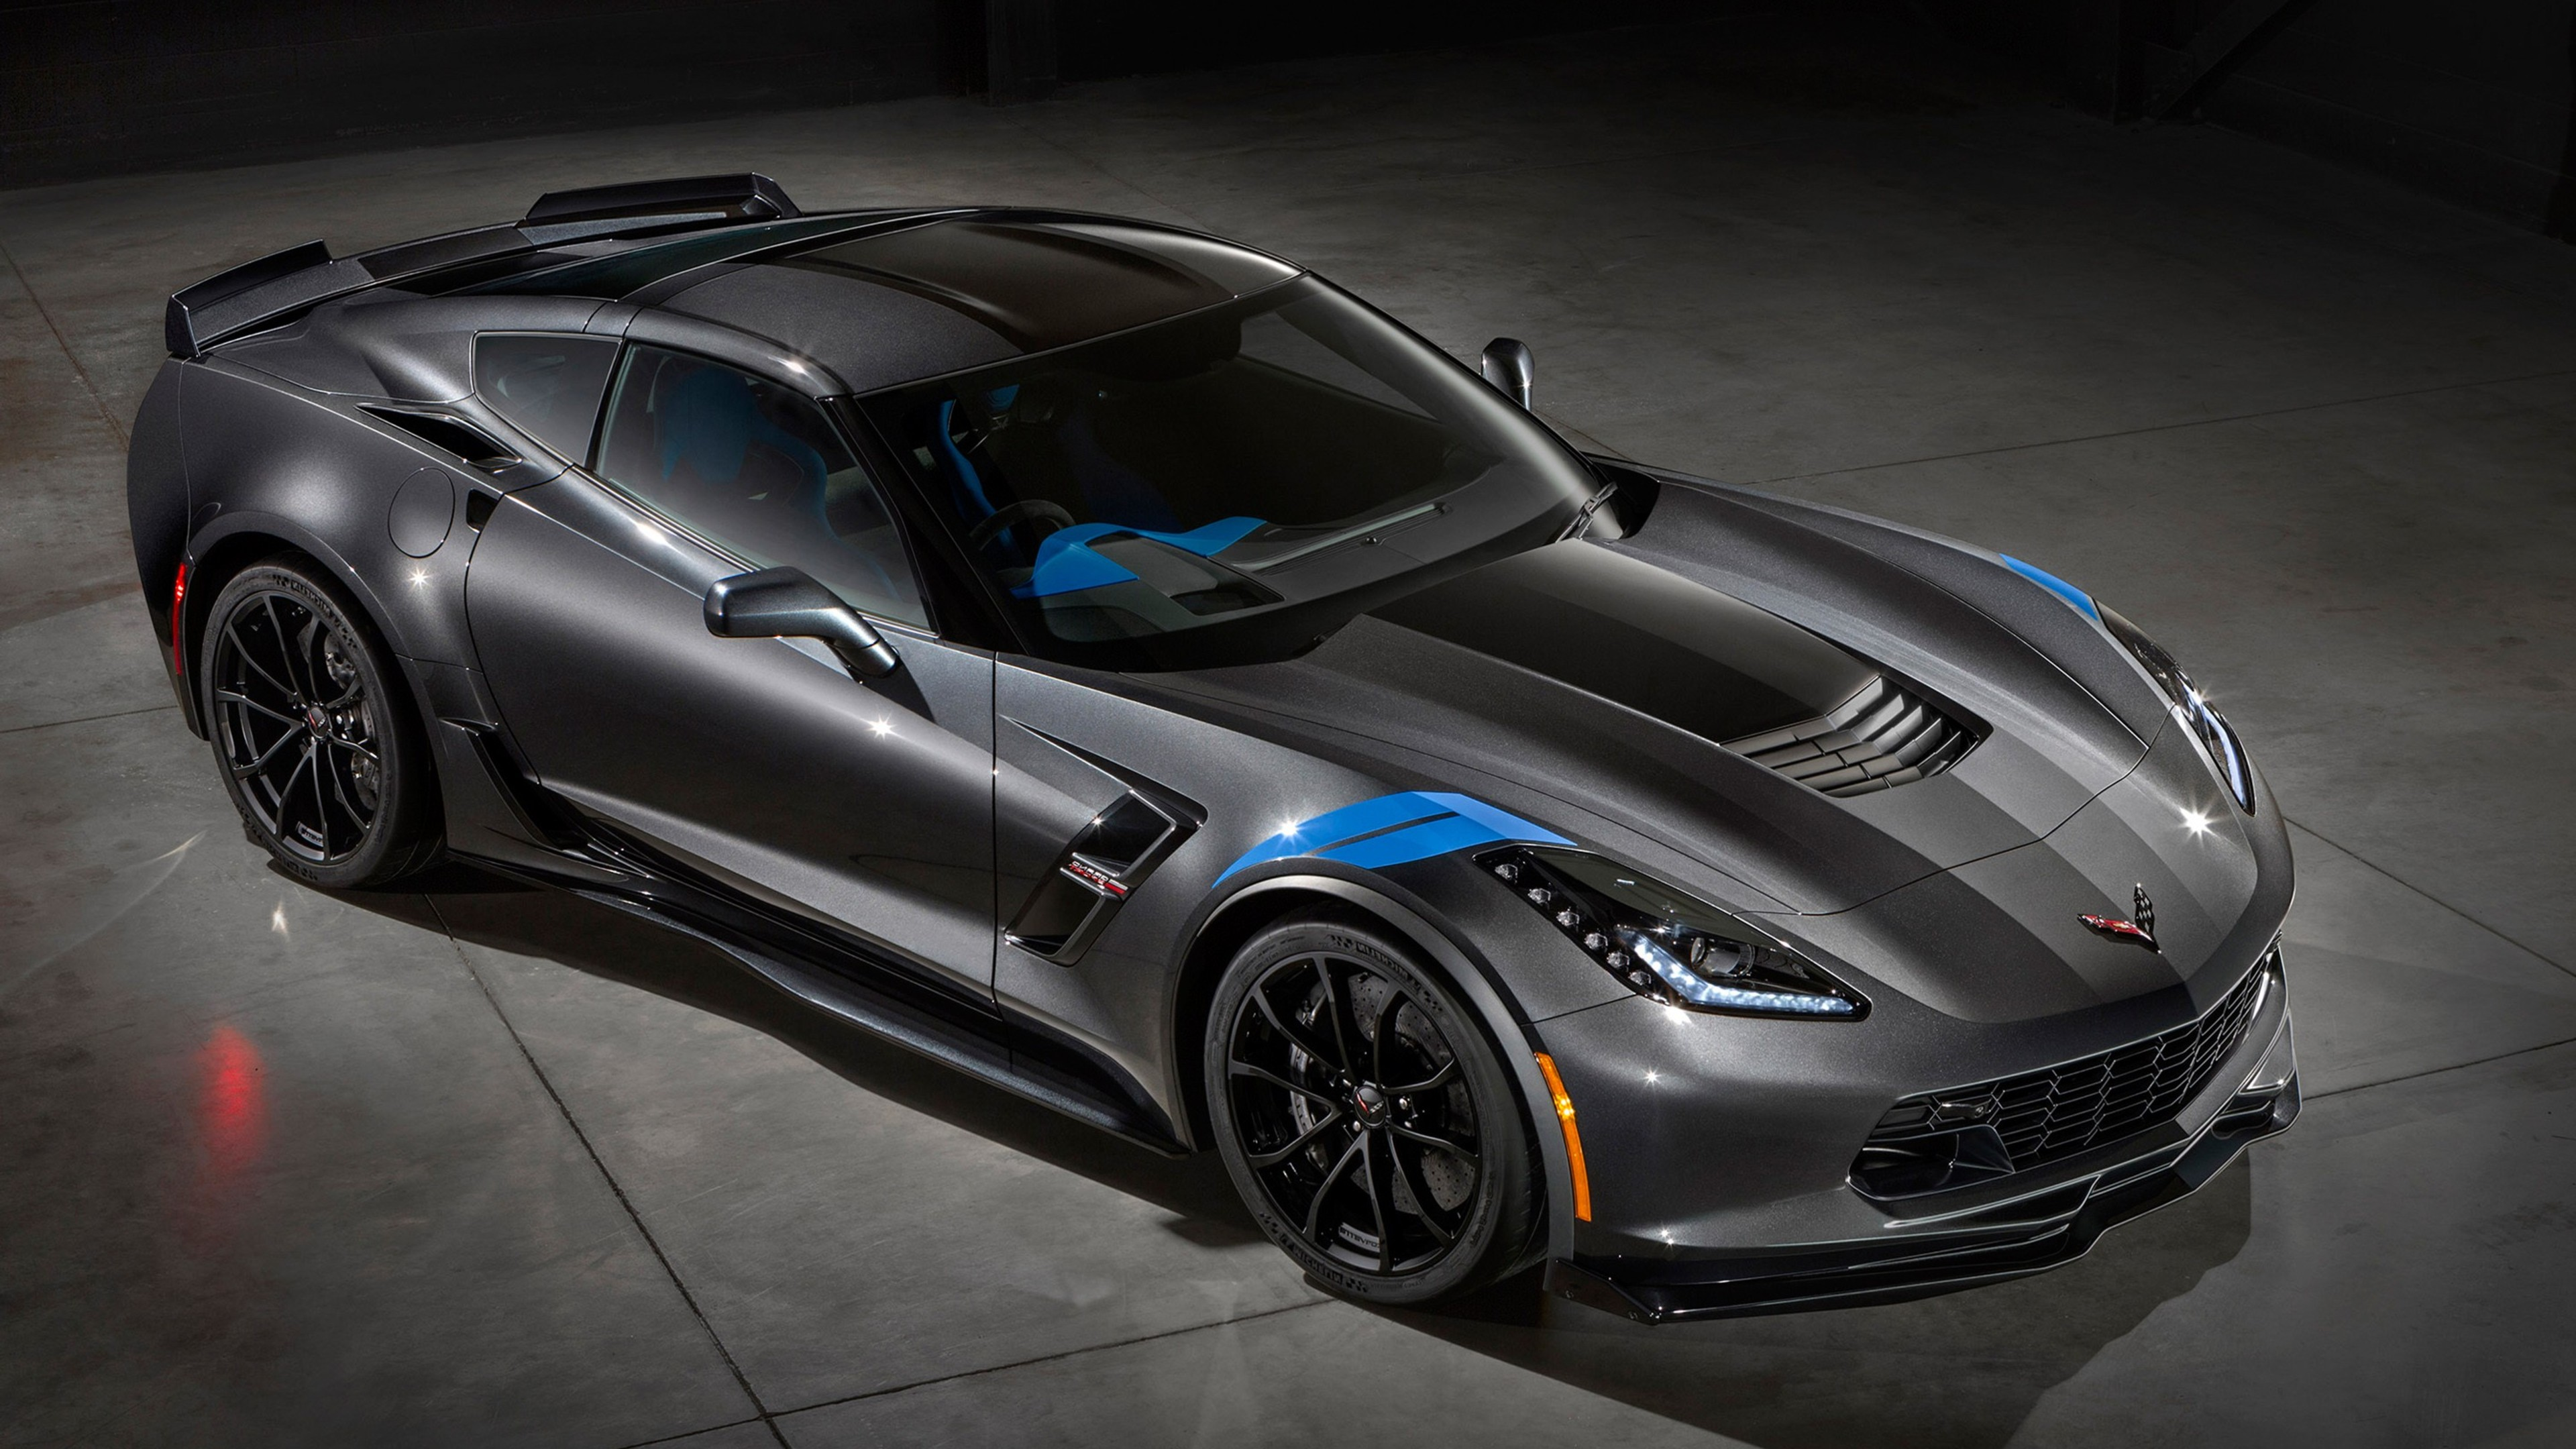 Chevrolet Corvette Grand Sport, HD Cars, 4k Wallpapers, Images, Backgrounds, Photos and Pictures